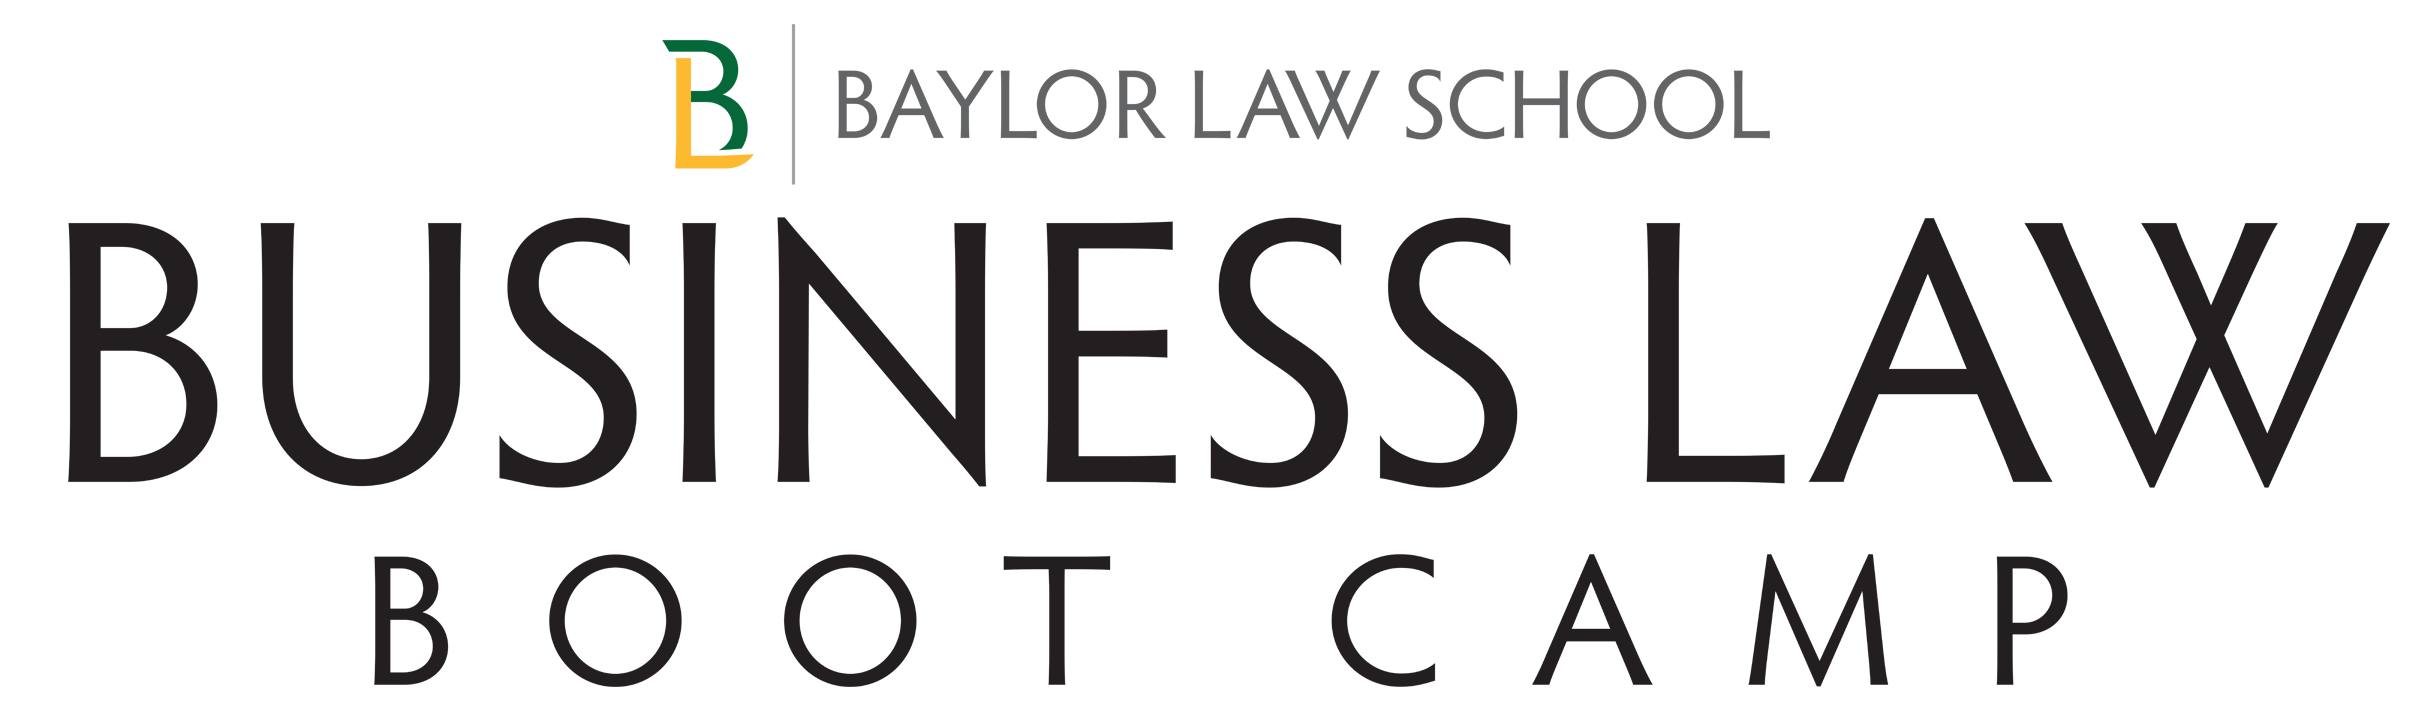 Business Law Png - Business Law Boot Camp, Transparent background PNG HD thumbnail